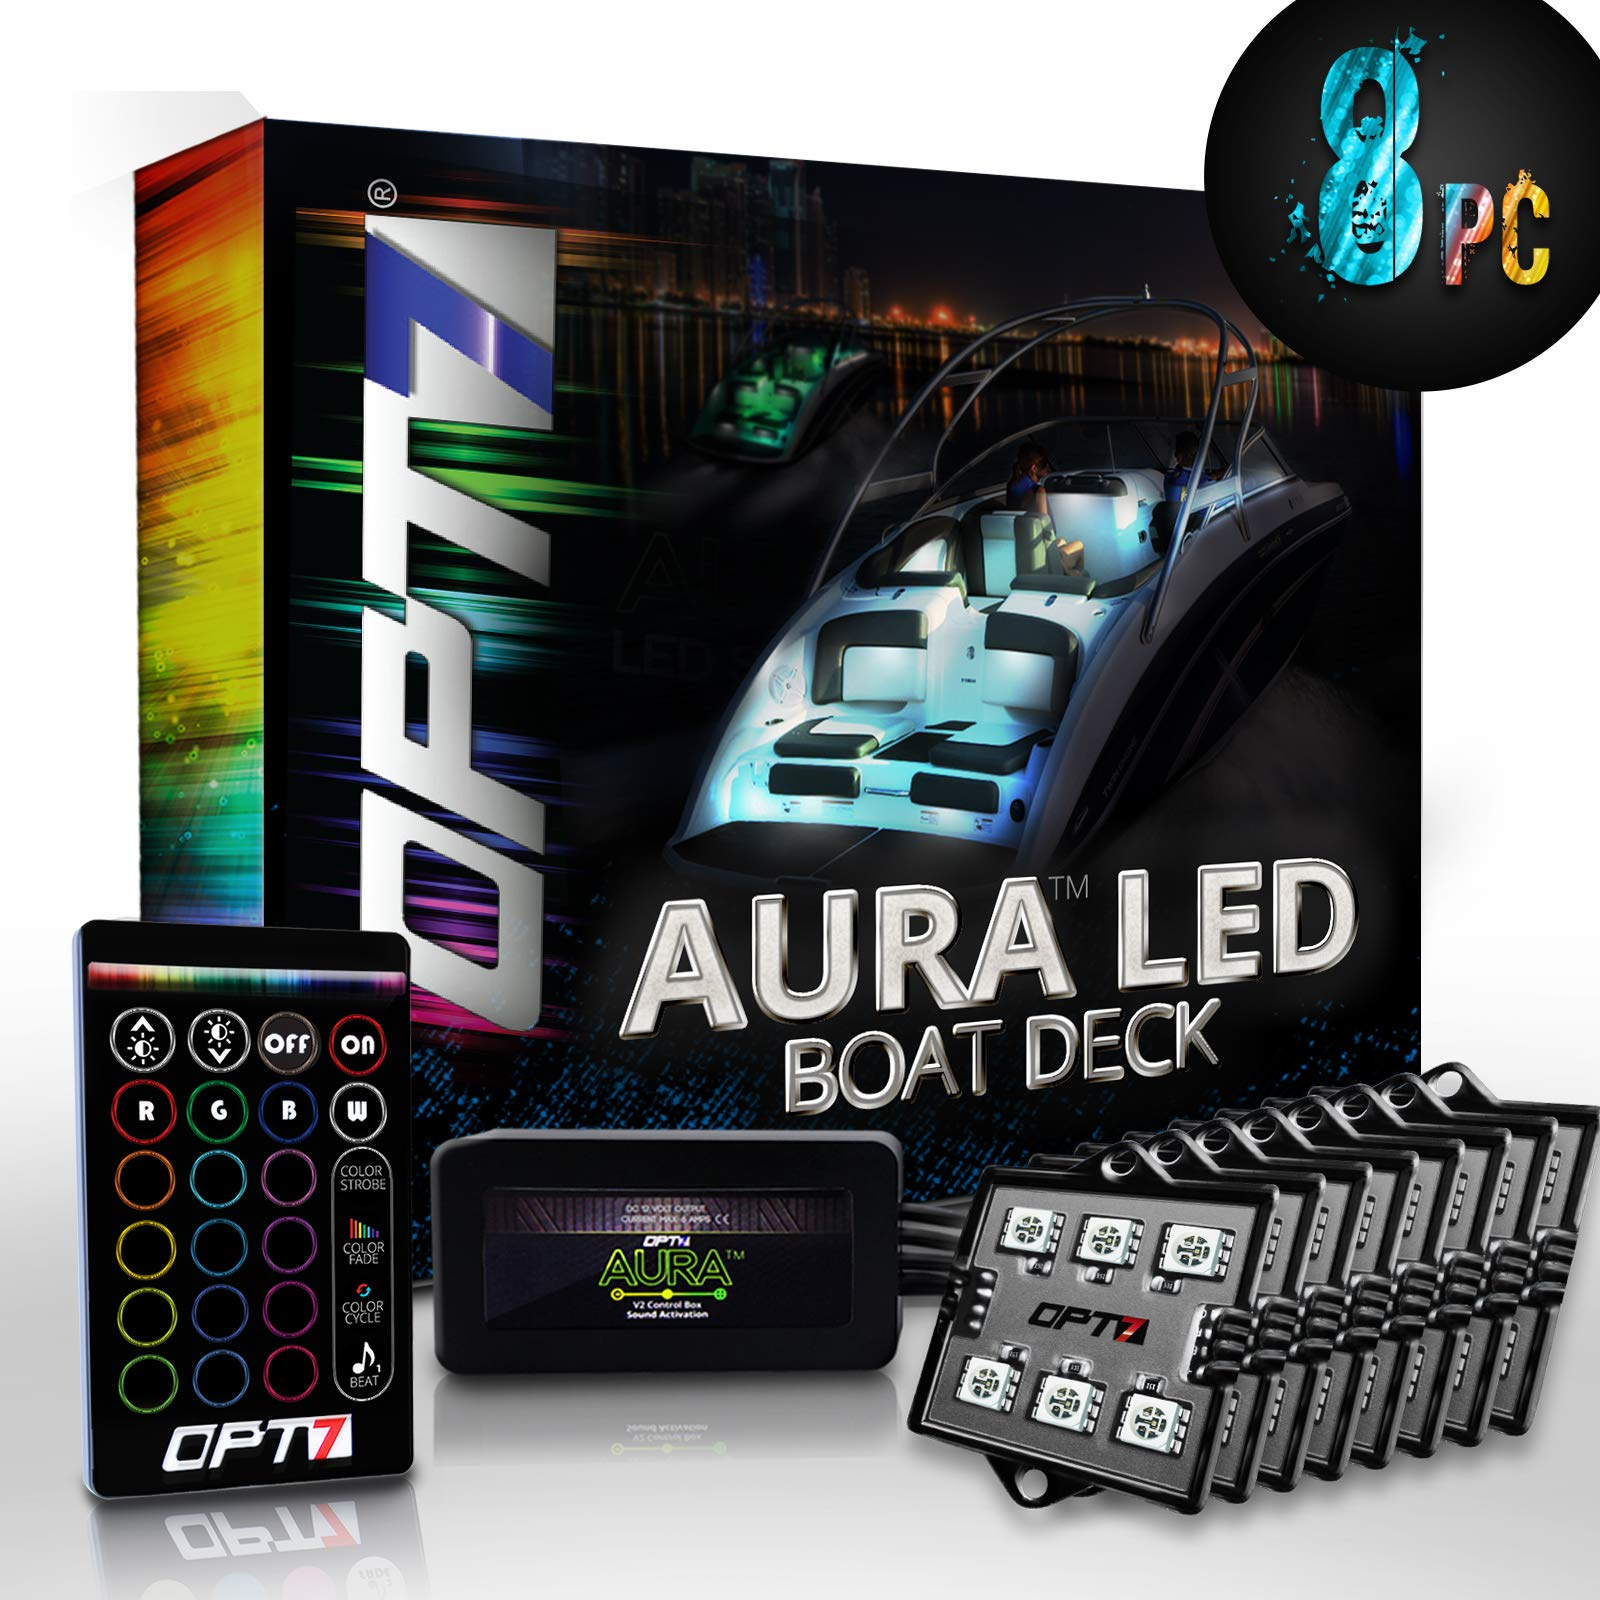 OPT7 Aura 8pc Boat Interior LED Lighting Kit with Multi-Color Light Features, Wireless Remote, and Soundsync - 1-Year Warranty by OPT7